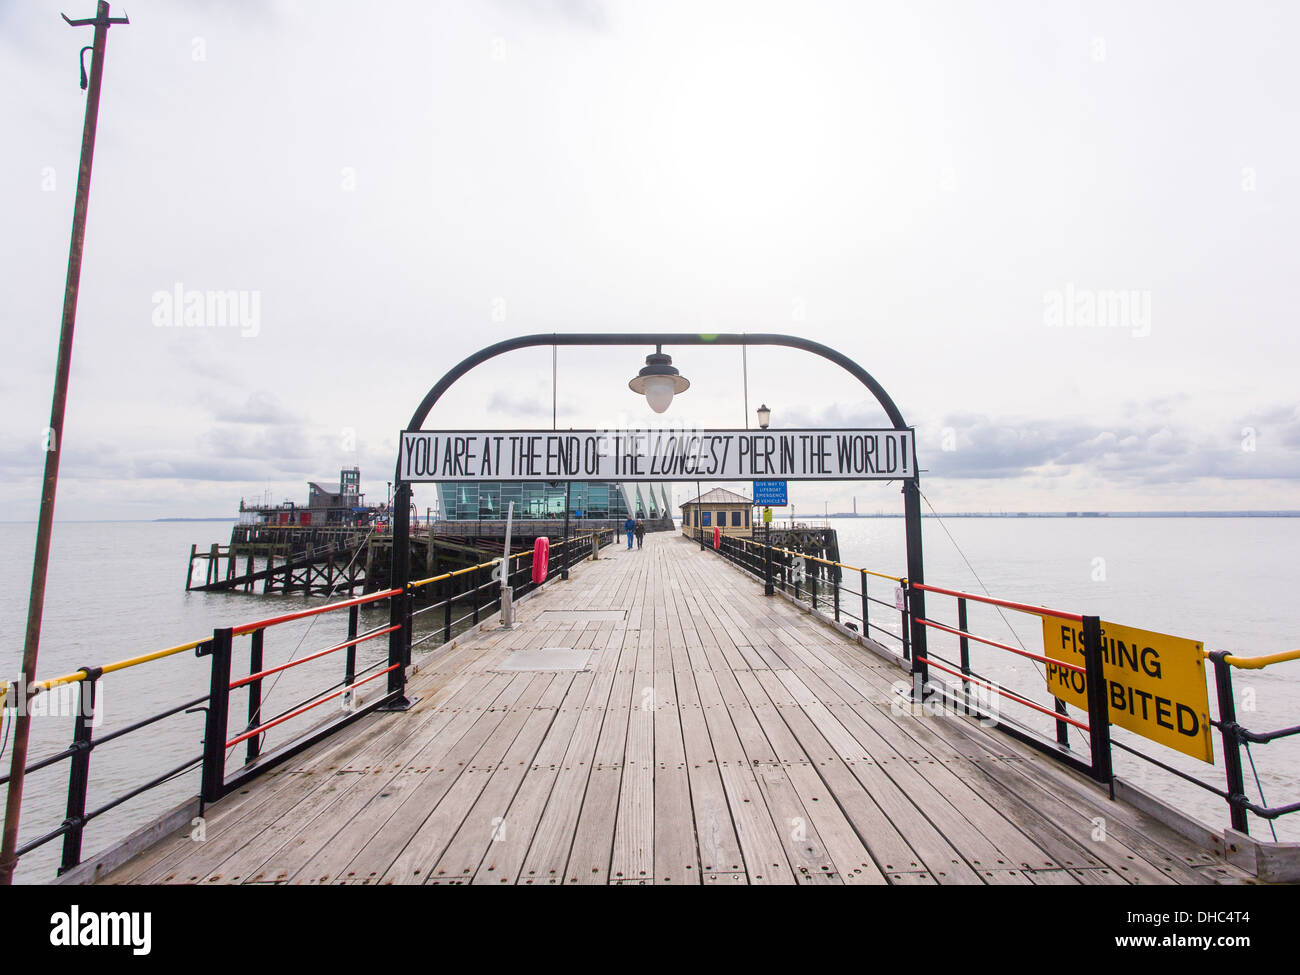 12/10/2013 Pier end sign on Southend pier. The longest pier in the World measuring 1.33 miles into the Thames river. - Stock Image